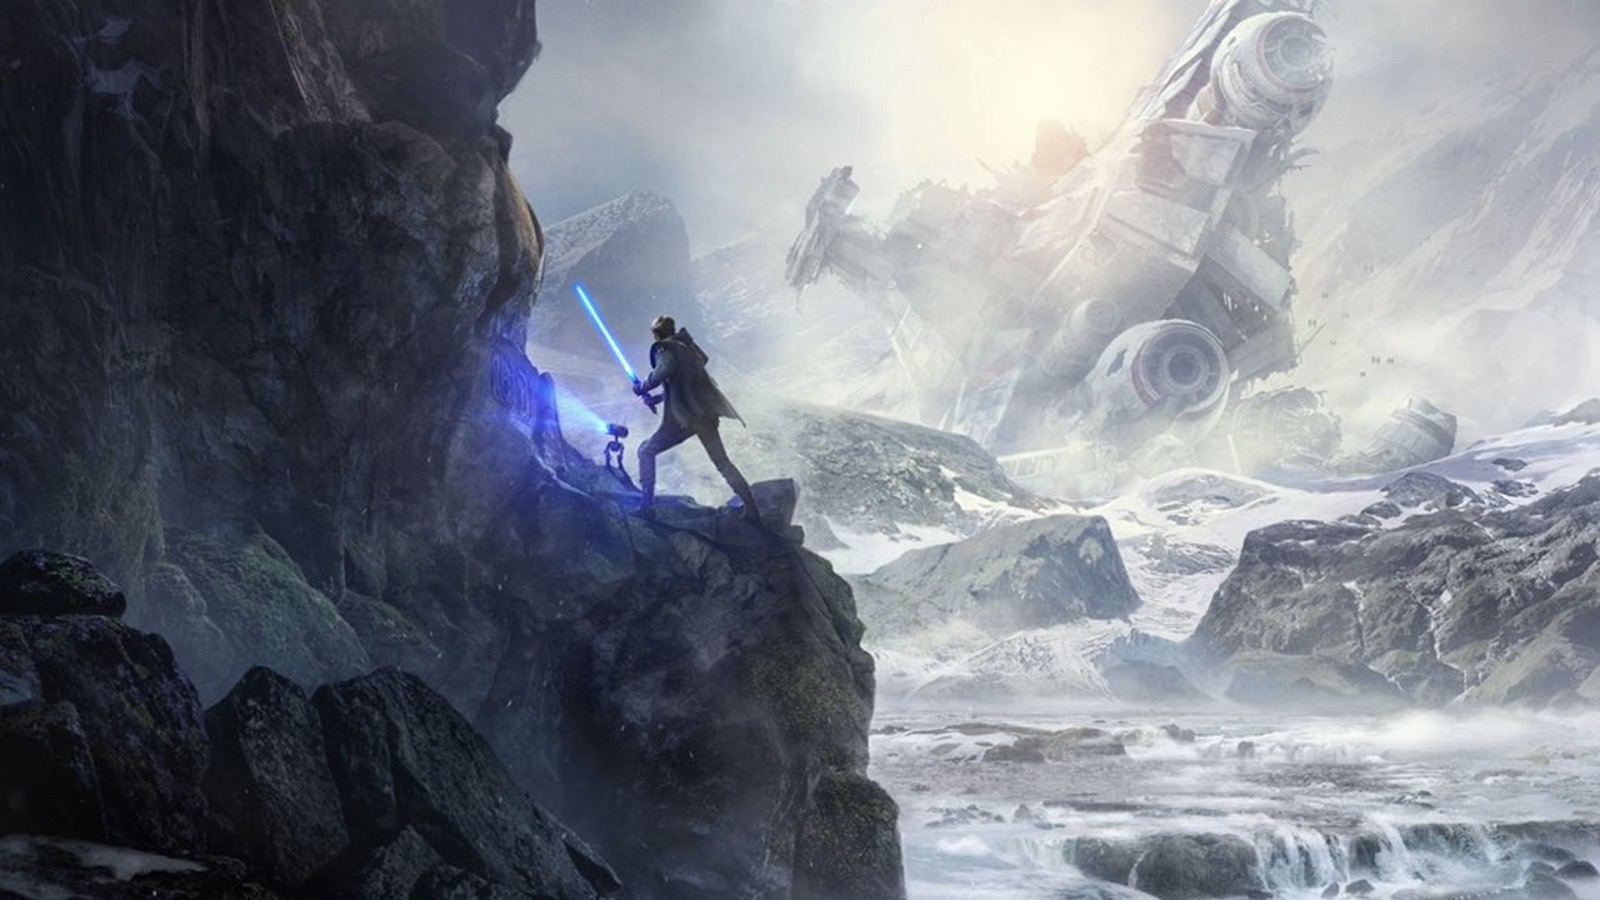 Star Wars Jedi: Fallen Order; screenshot: Bracca